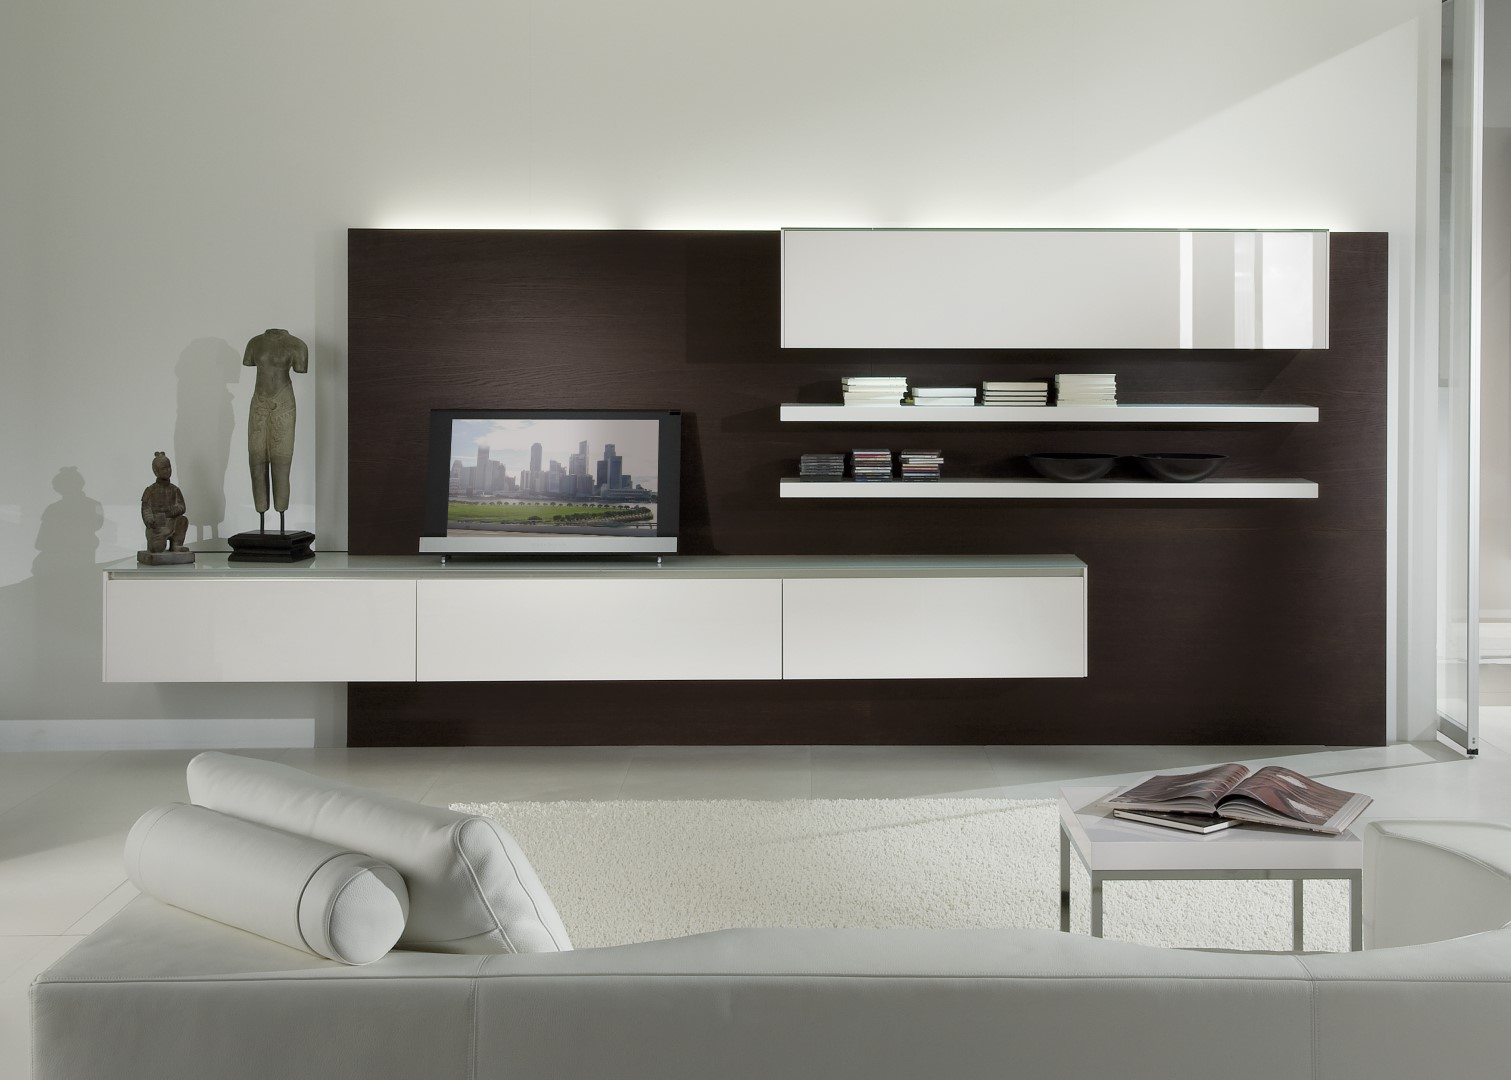 wohnen k chenstudio amann gmbh in altenstadt wn. Black Bedroom Furniture Sets. Home Design Ideas